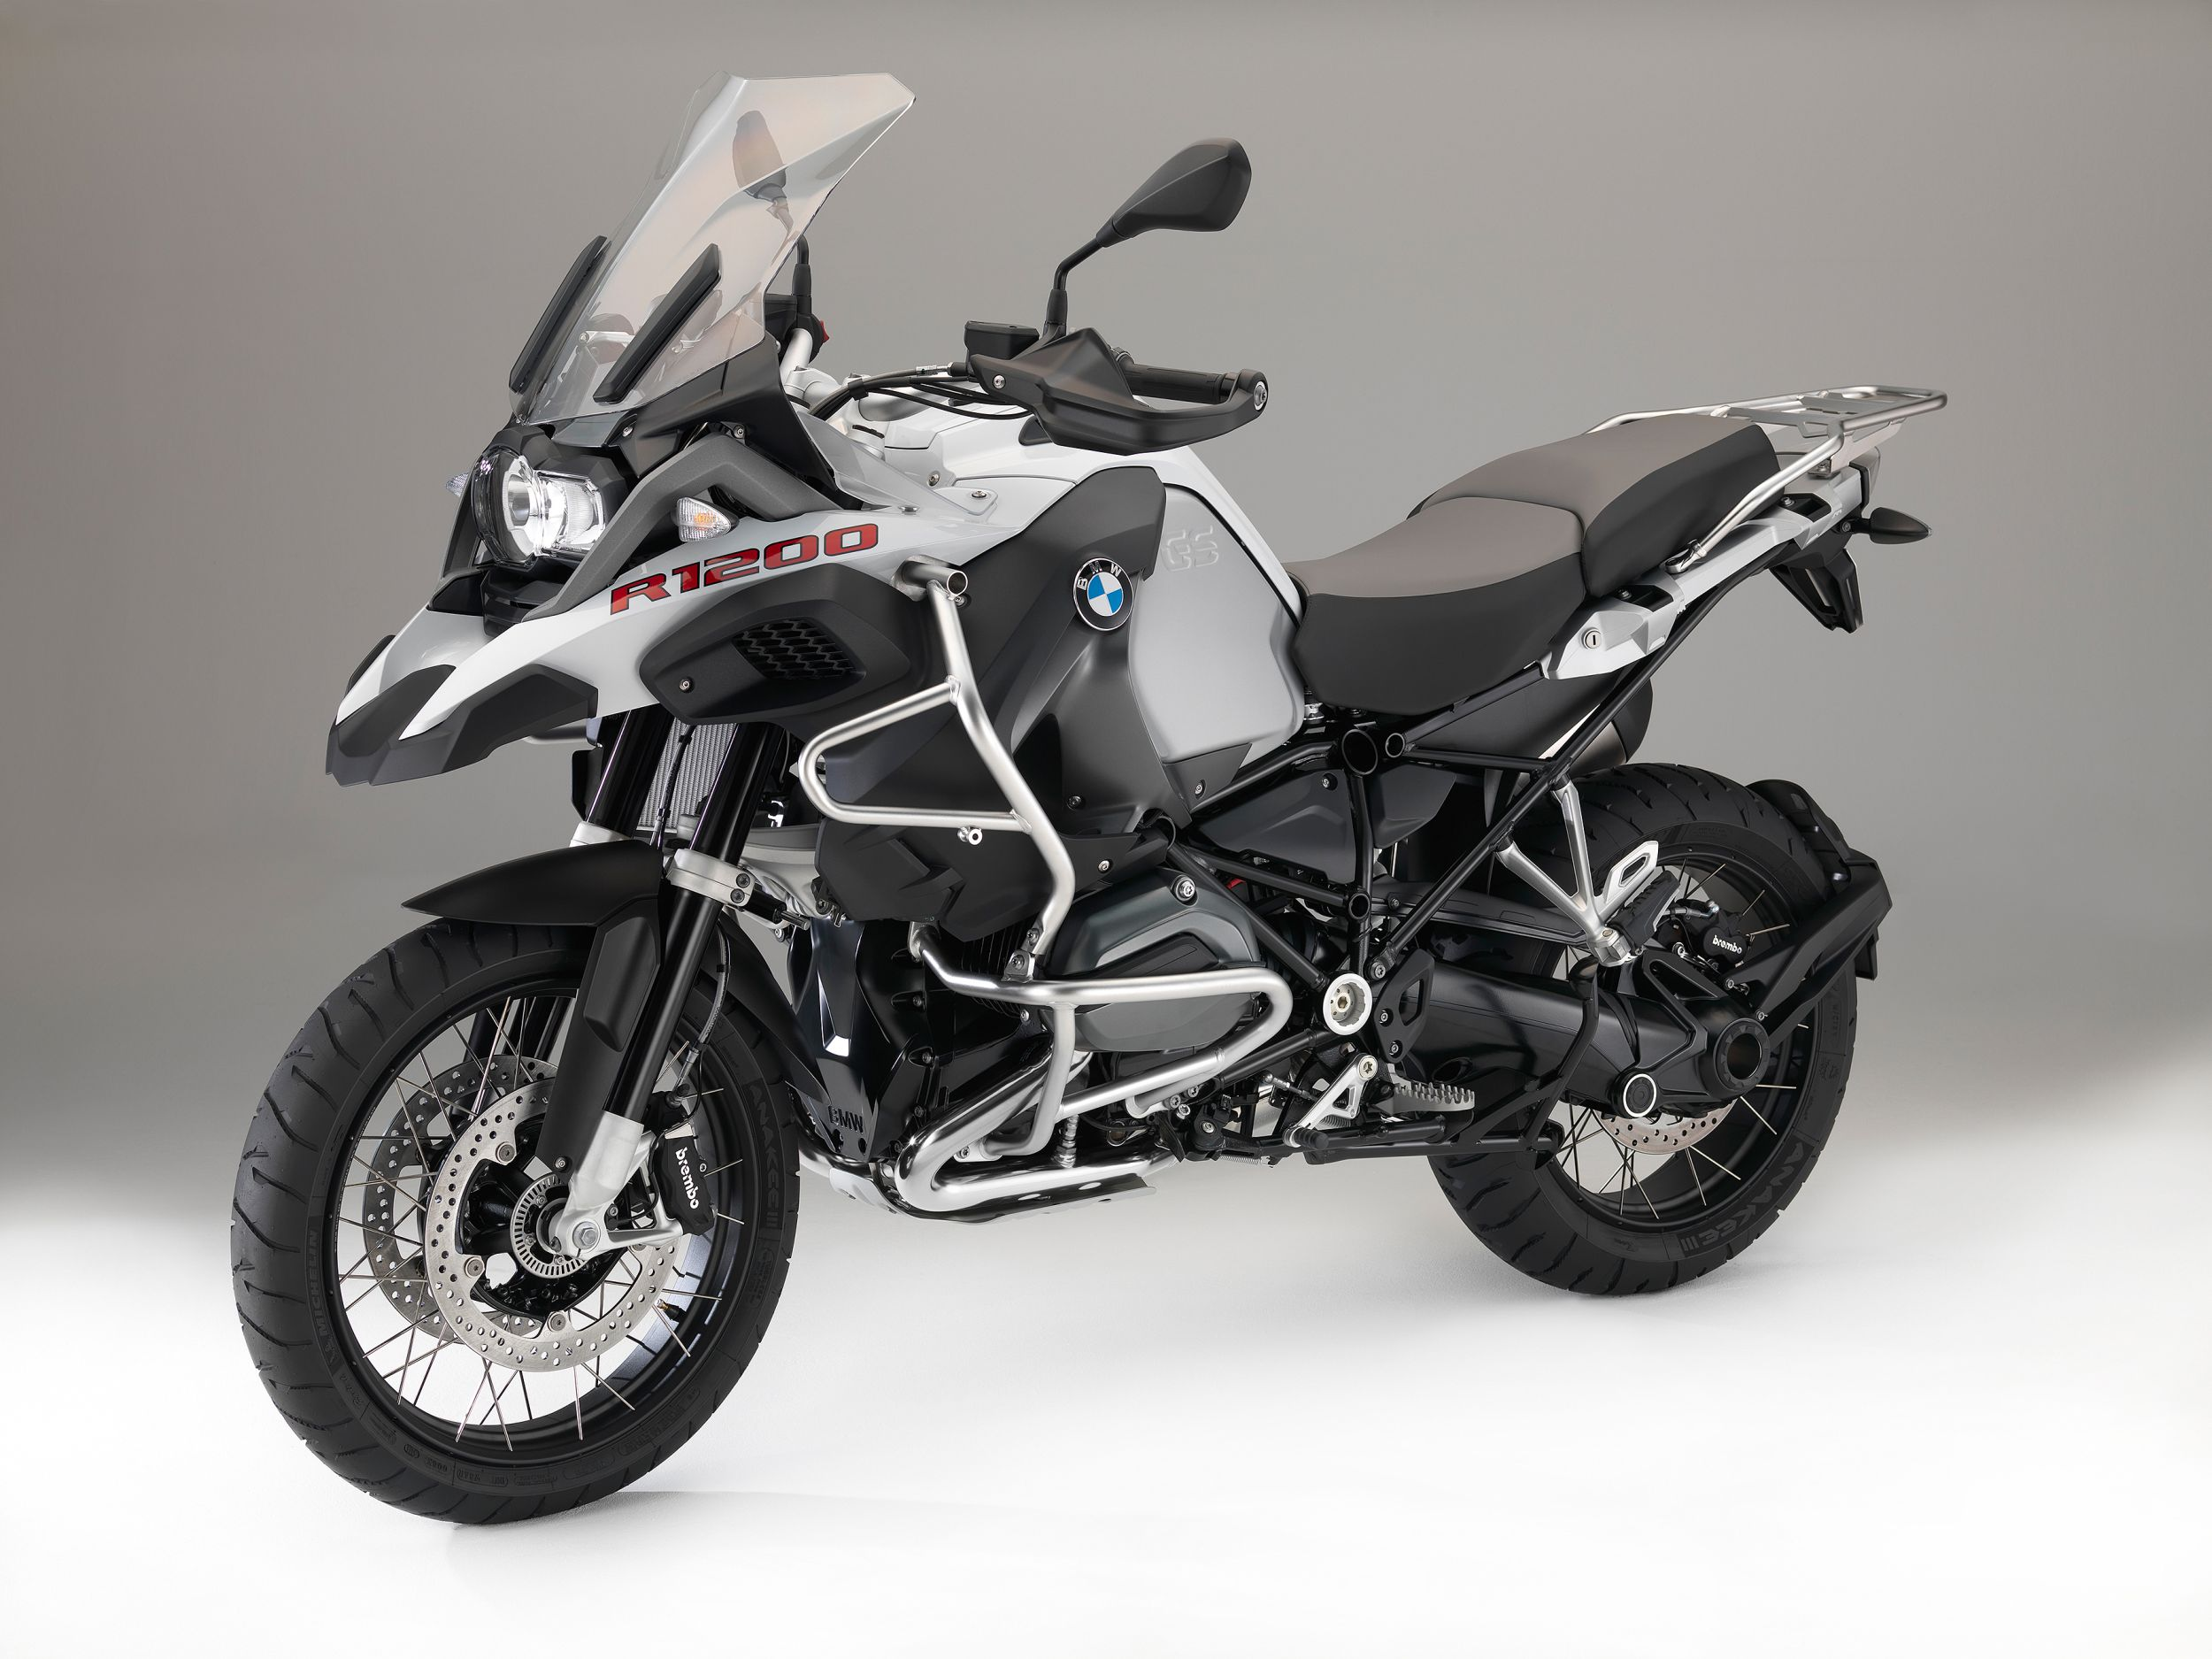 bmw r 1200 gs adventure junge gebrauchte online kaufen. Black Bedroom Furniture Sets. Home Design Ideas